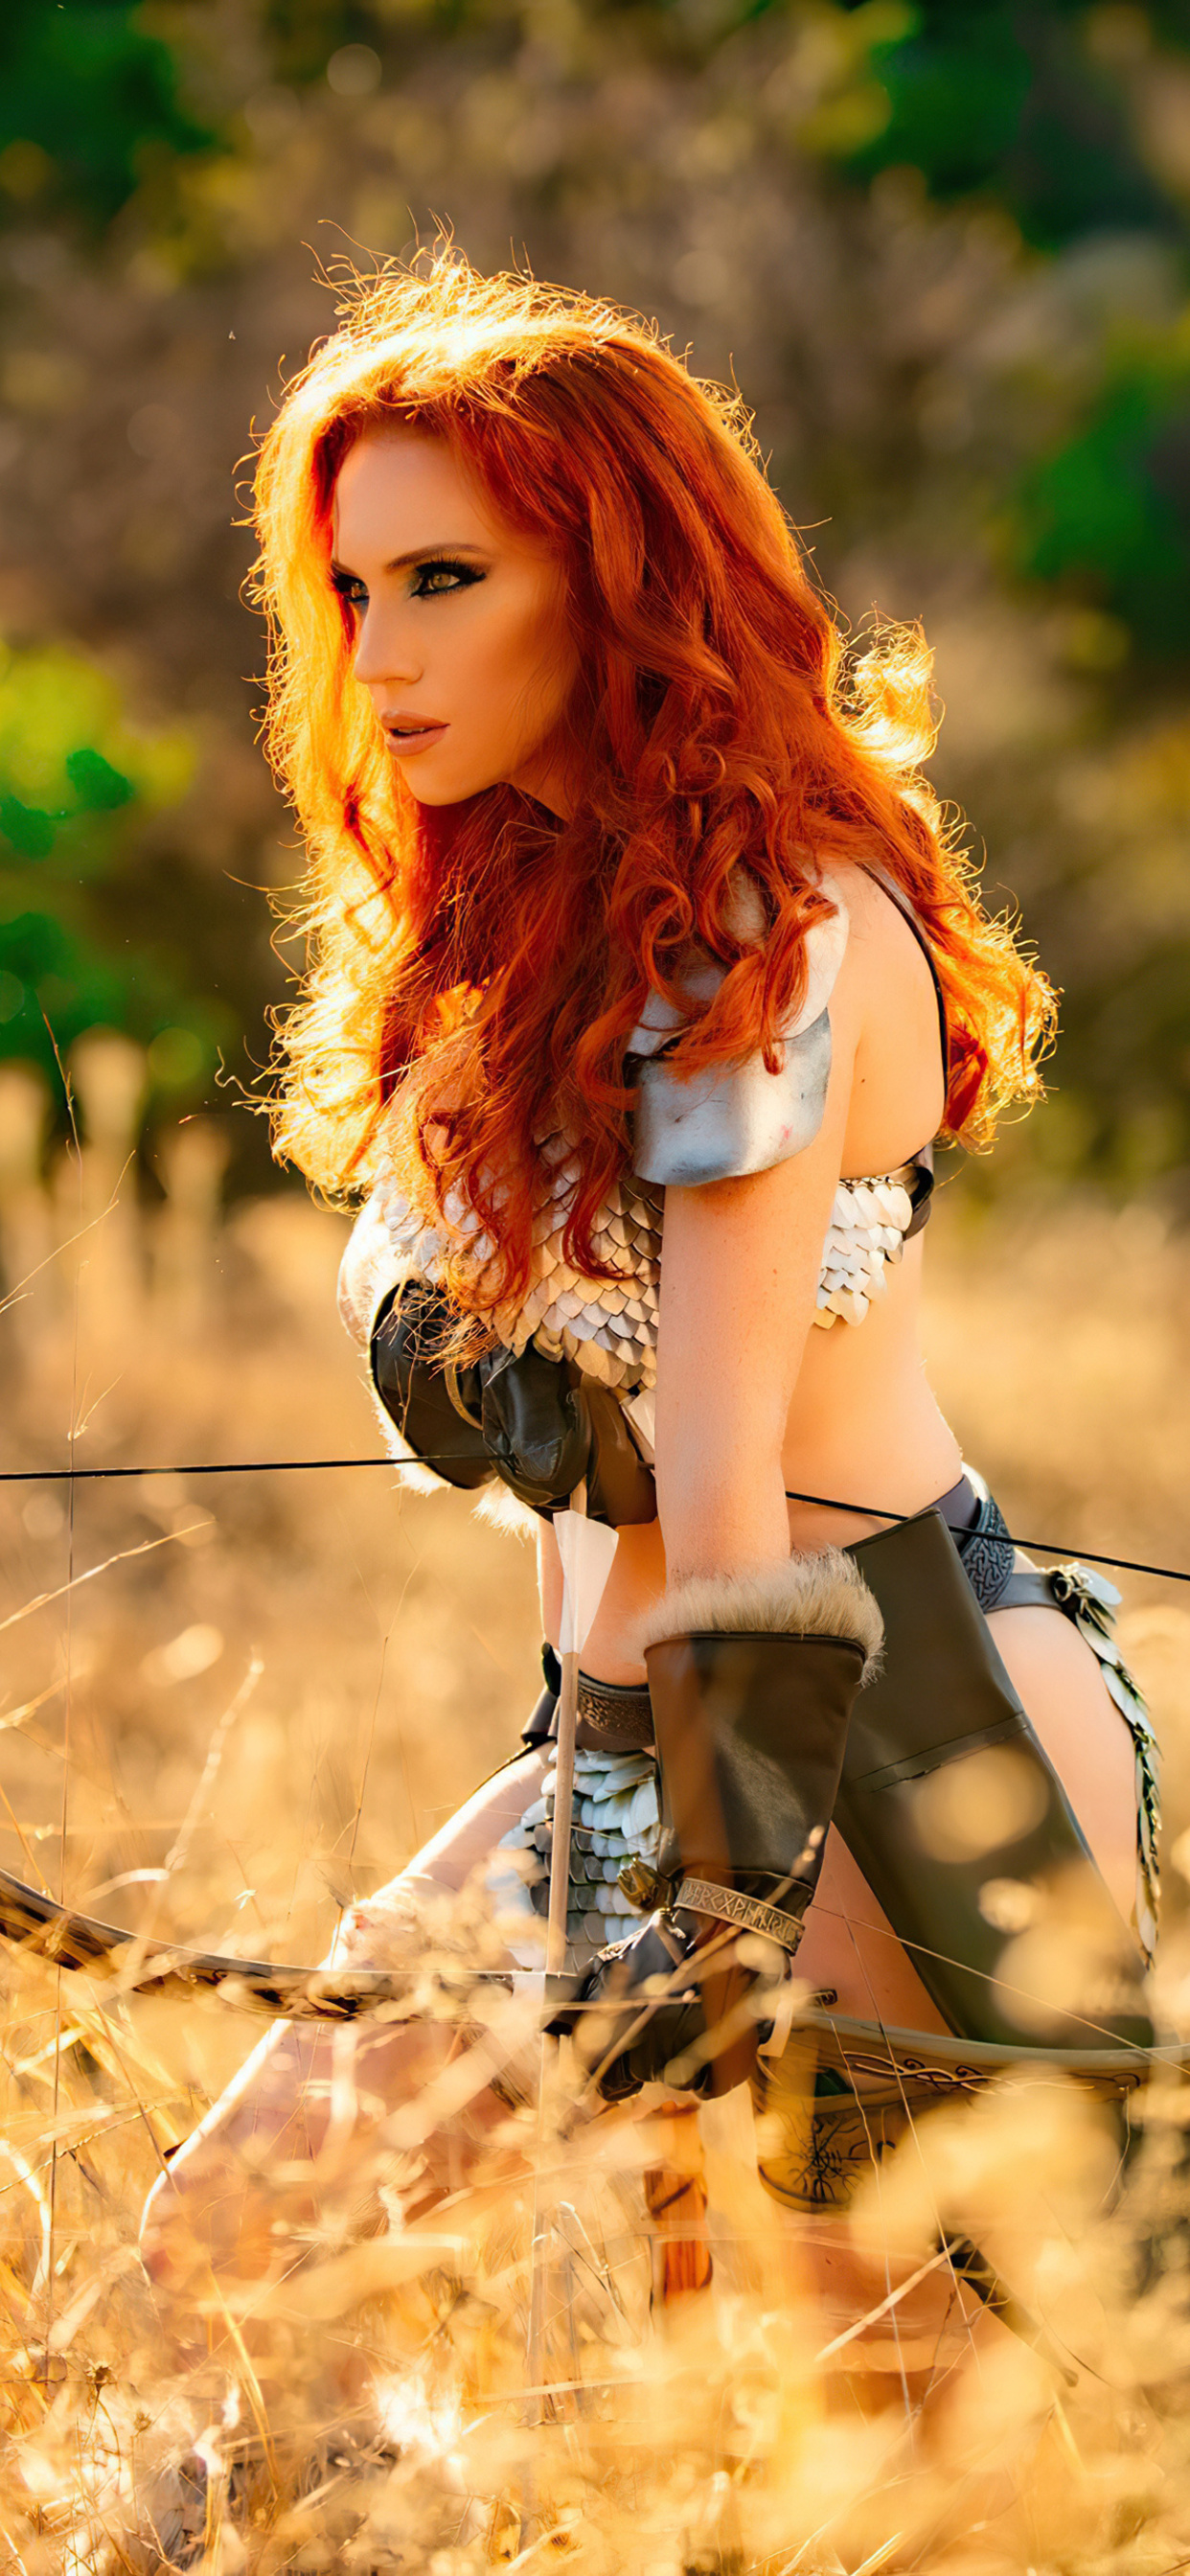 red-sonja-cosplay-4k-va.jpg